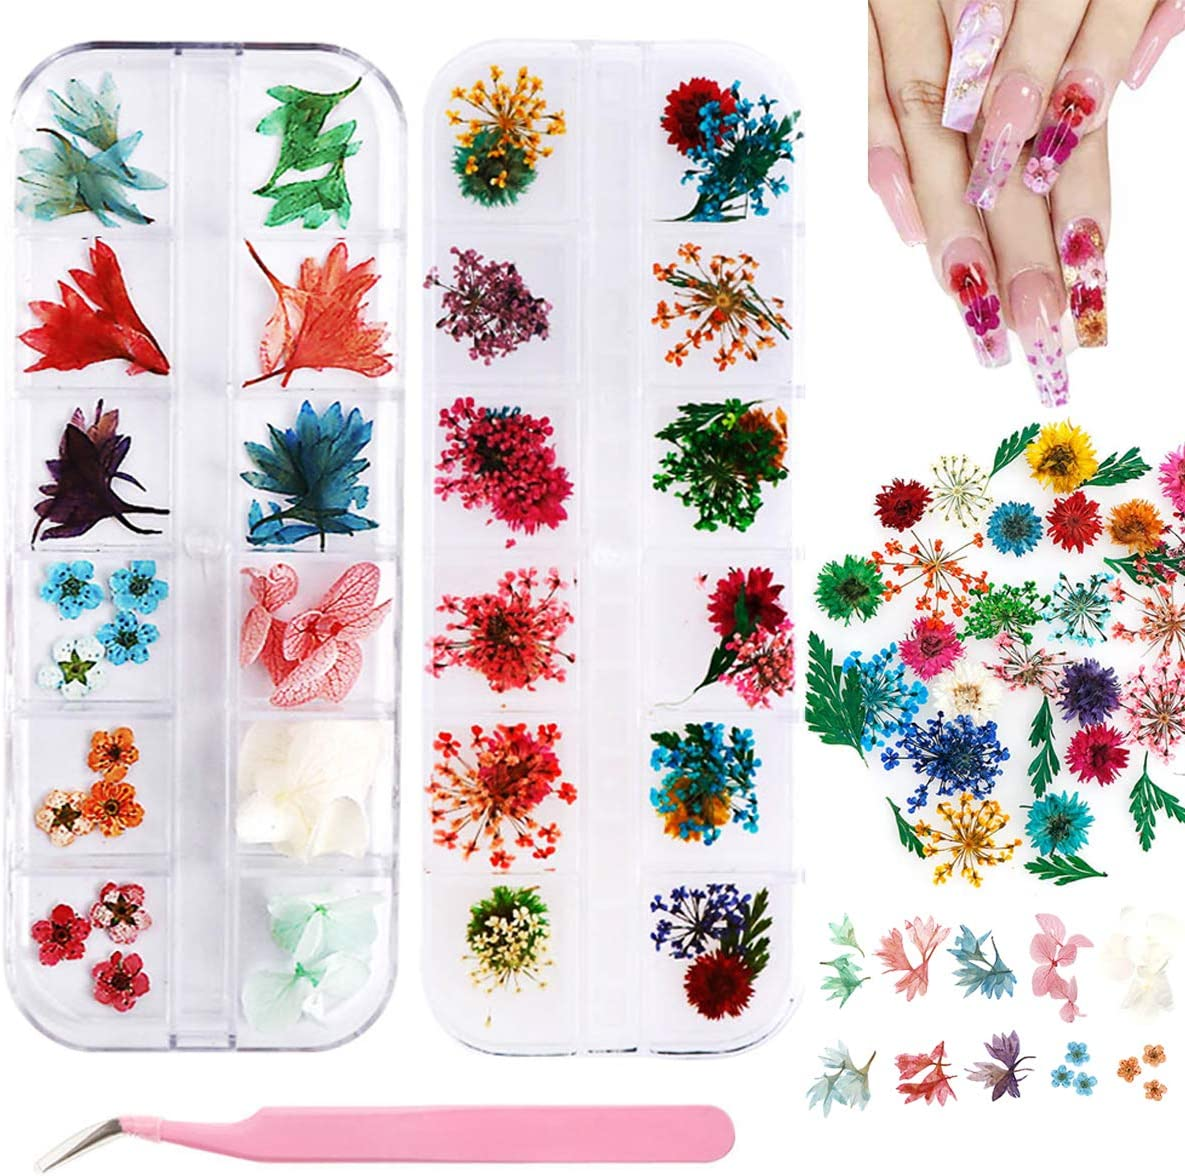 Dried Flowers Nail Art, 2 Boxes Nail Dried Flowers 24 Colors Mini Real Natural Flowers with Tweezers 3D Applique Nail Decoration Sticker for Tips Manicure Decor